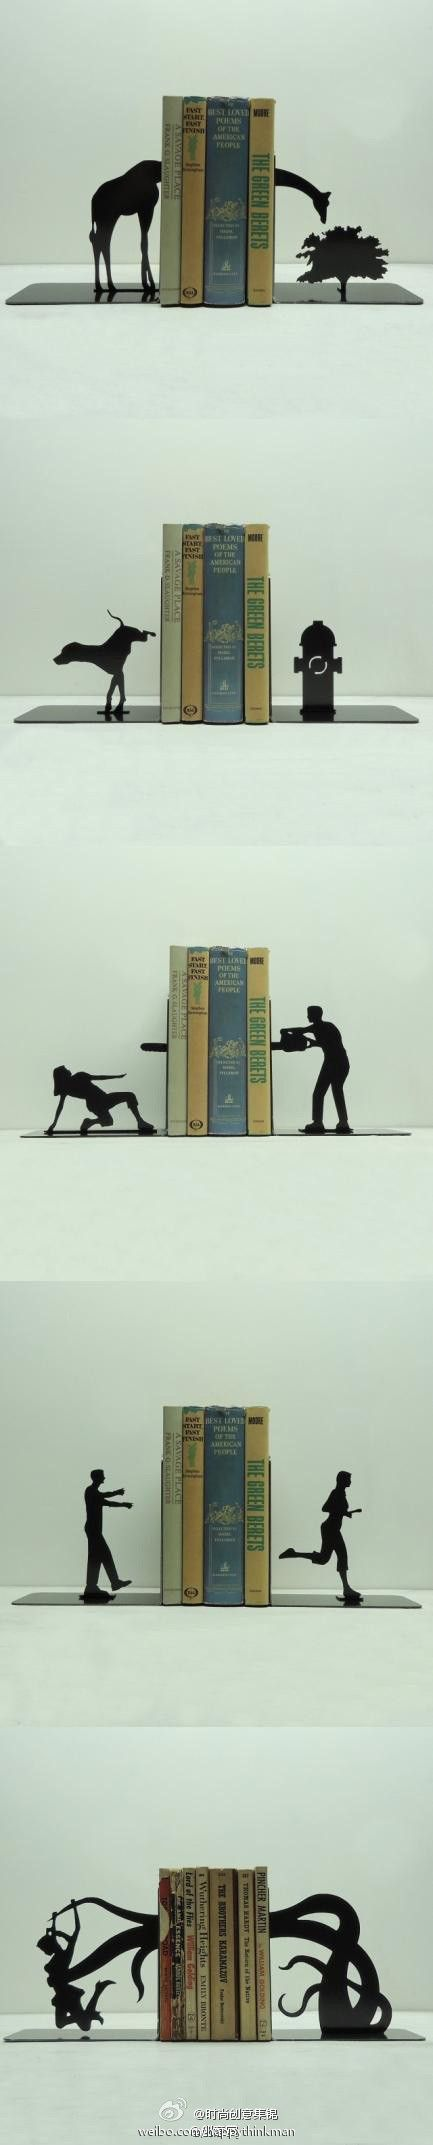 creative Bookends - sure to be a conversation starter!